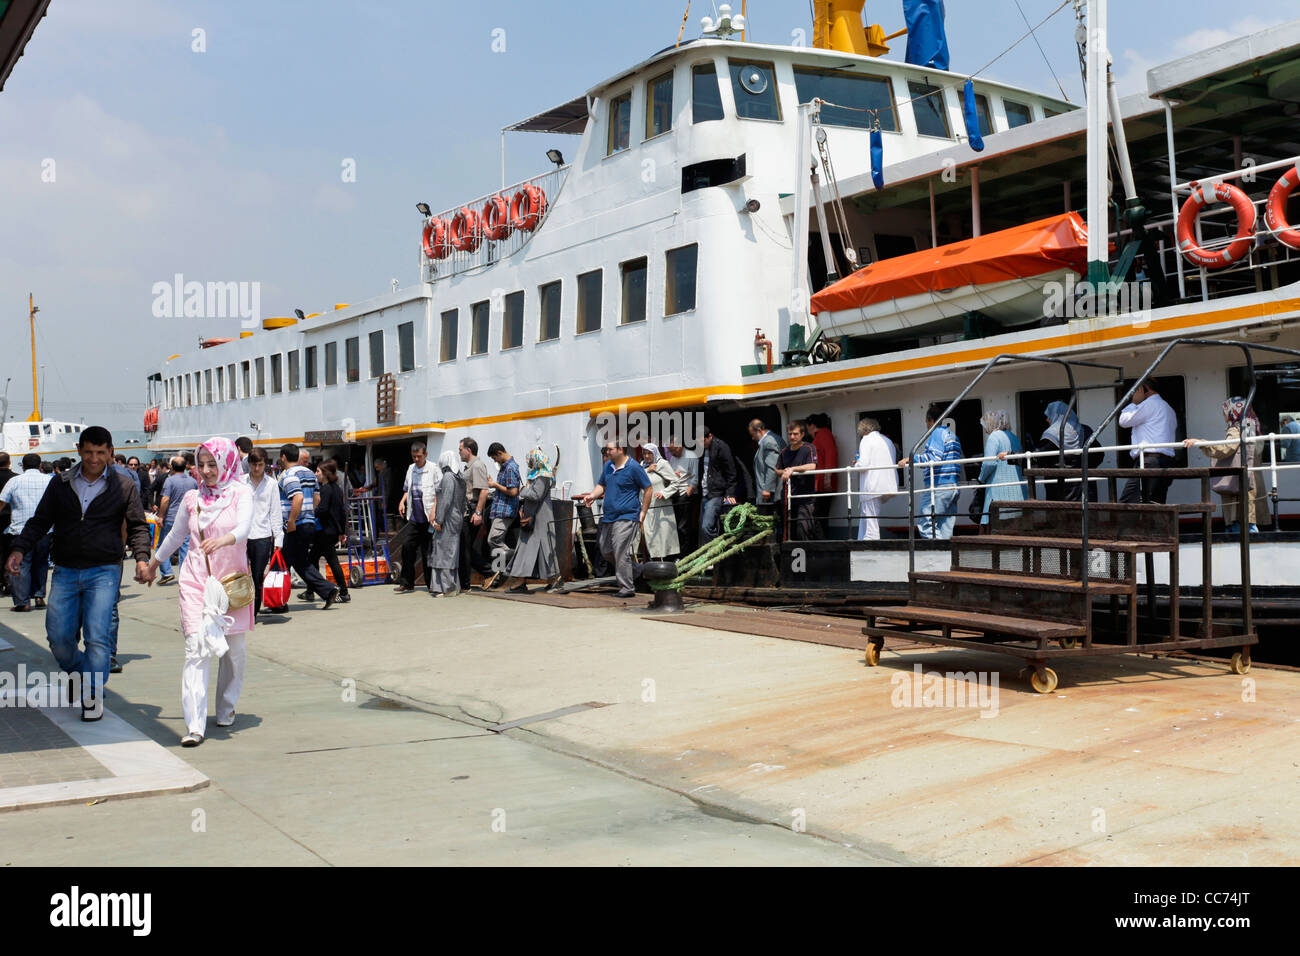 Istanbul, Turkey. Commuters disembark from ferry boat. - Stock Image